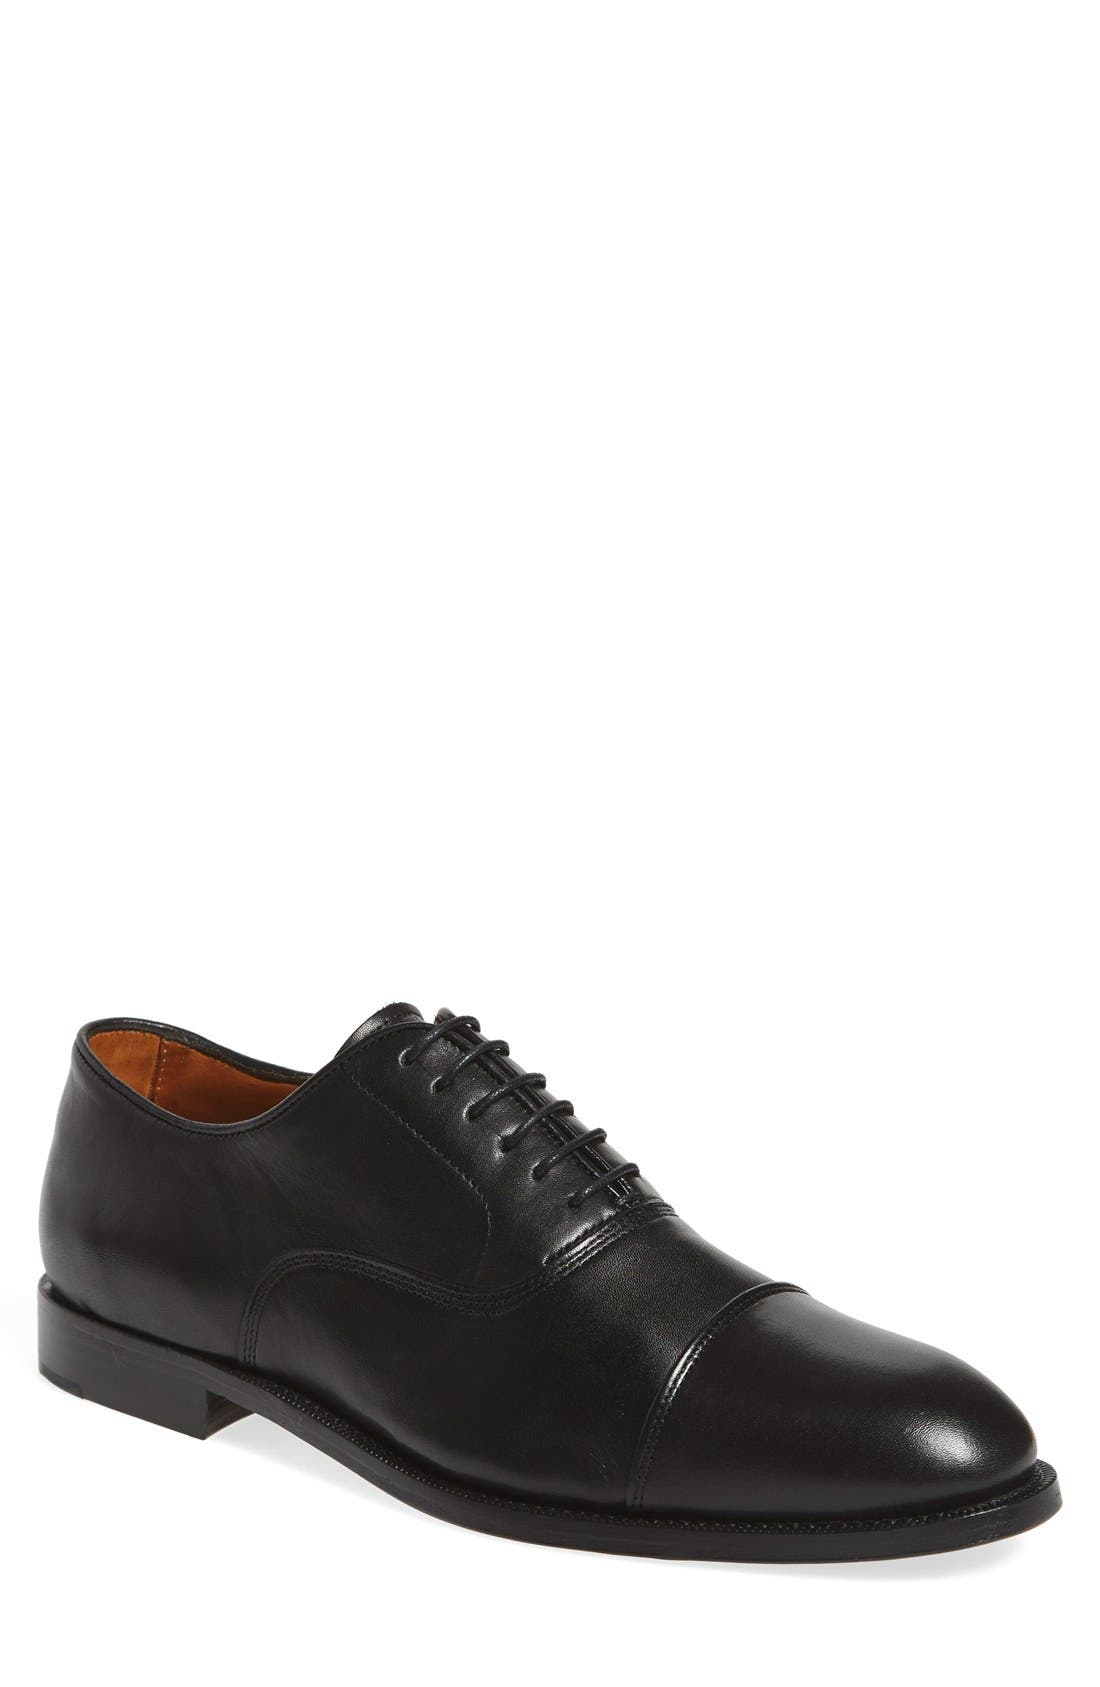 'Eeric' Cap Toe Oxford,                         Main,                         color, BLACK LEATHER